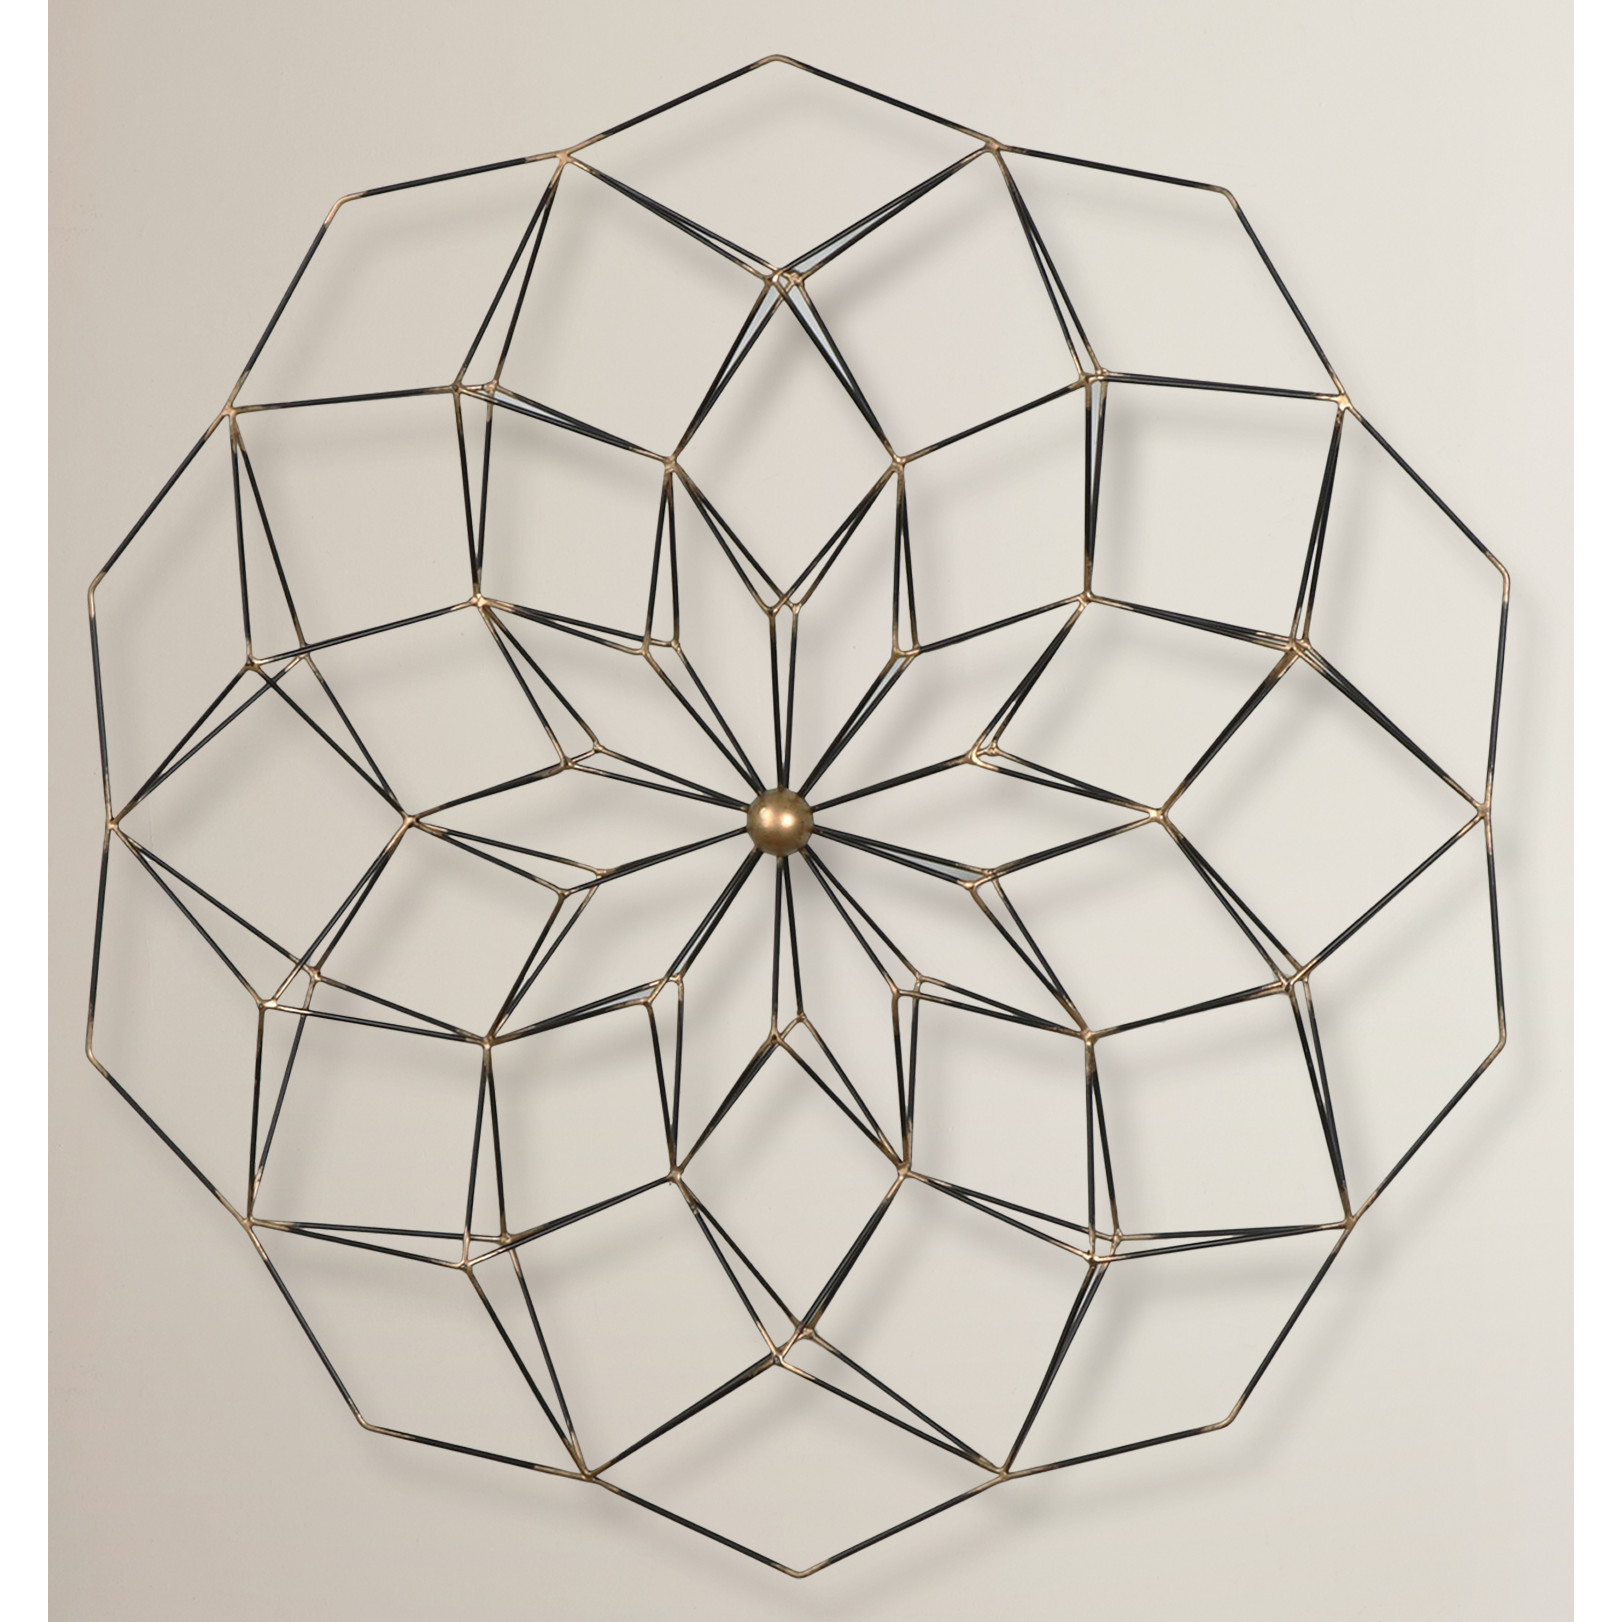 Best ideas about Geometric Wall Art . Save or Pin Brayden Studio Geometric Floral Framed Wall Art & Reviews Now.